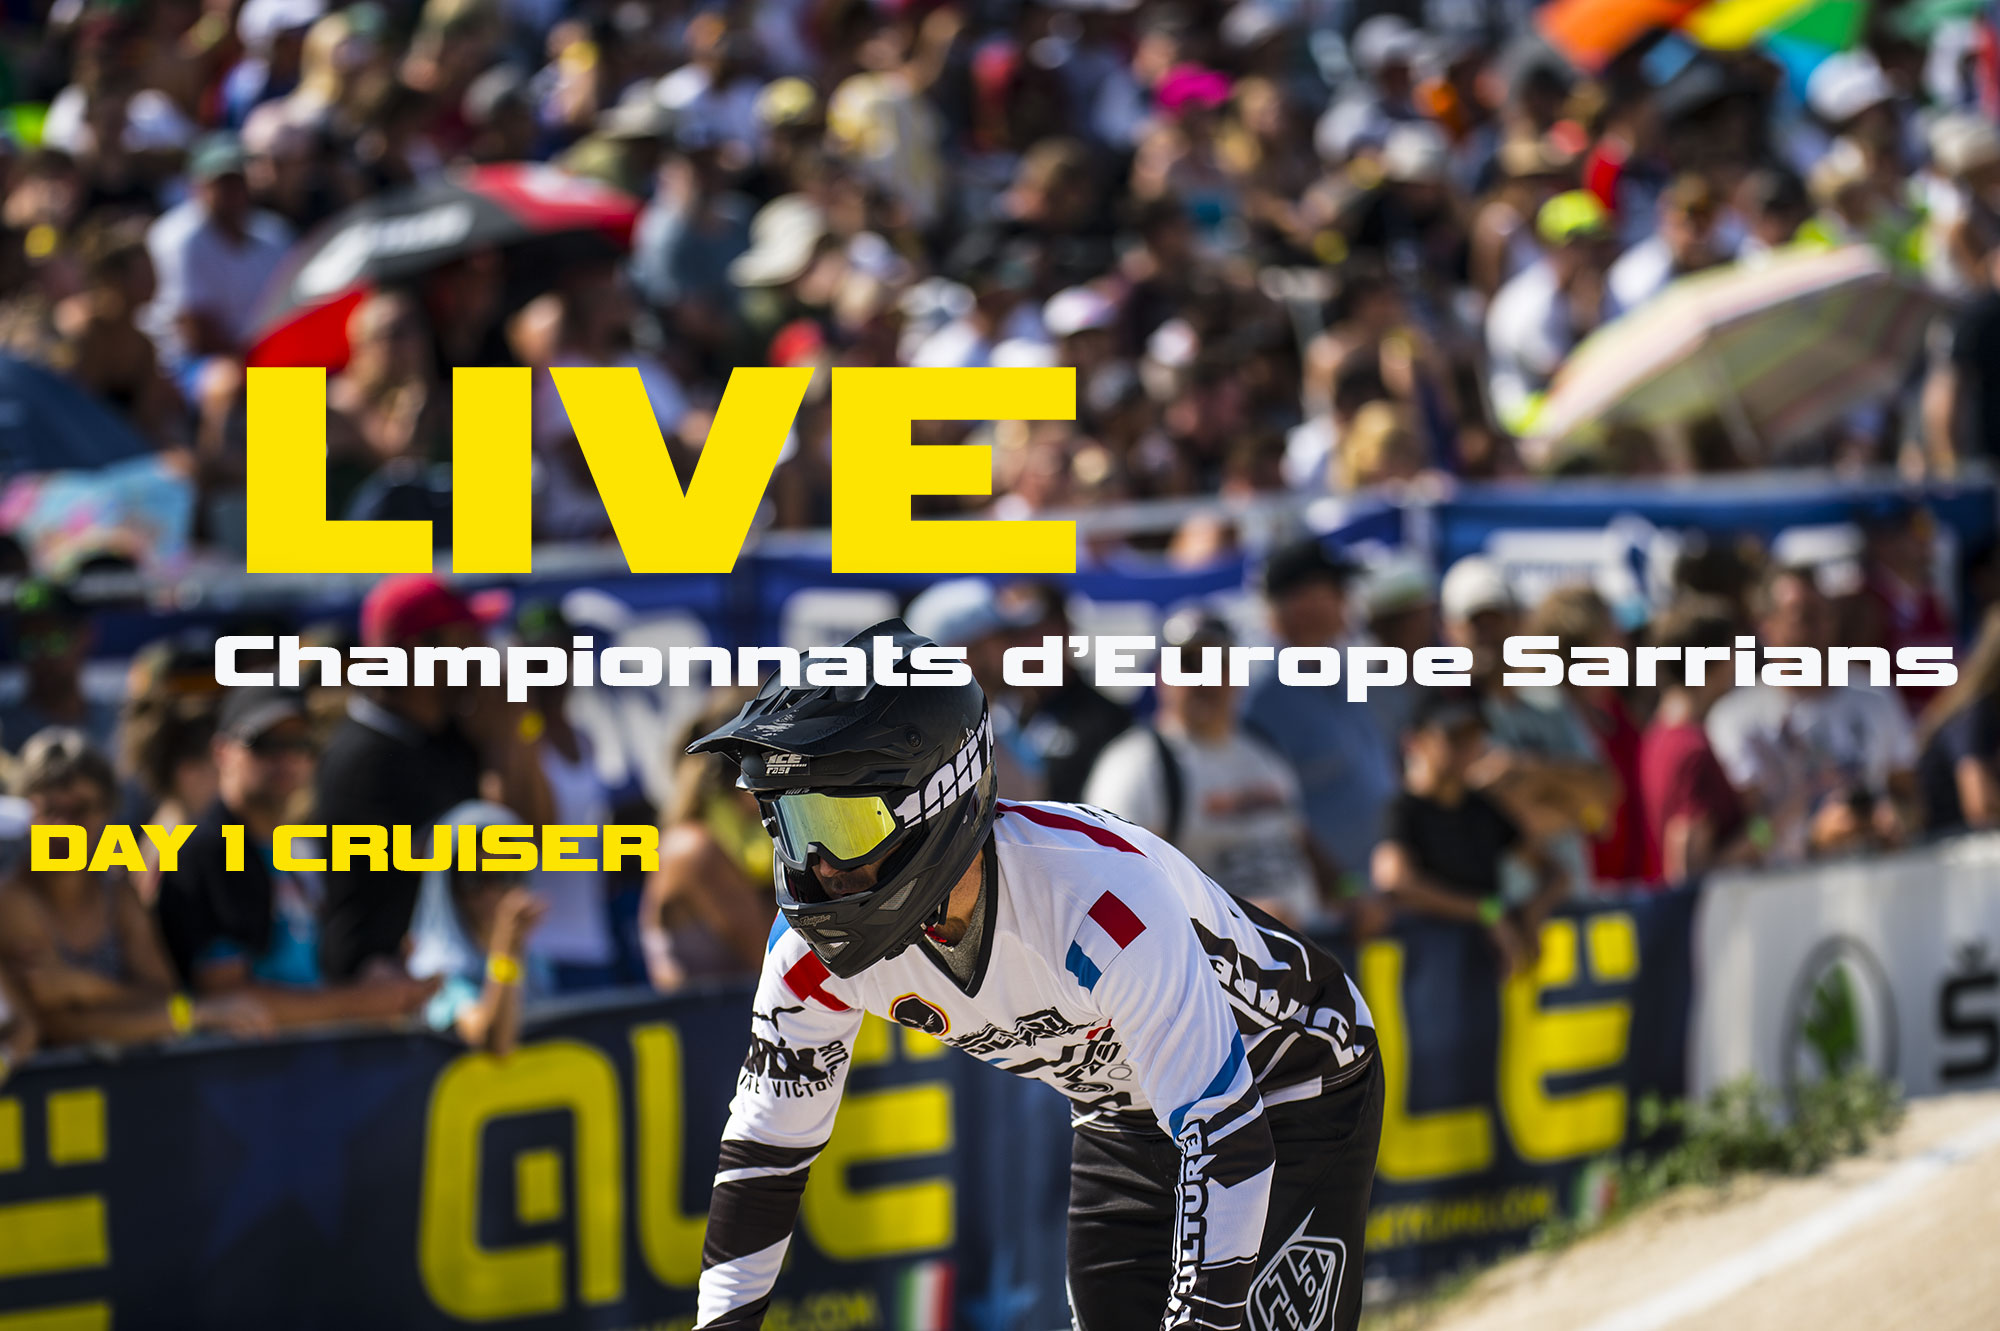 LIVE championnats d'Europe UEC Sarrians day 1